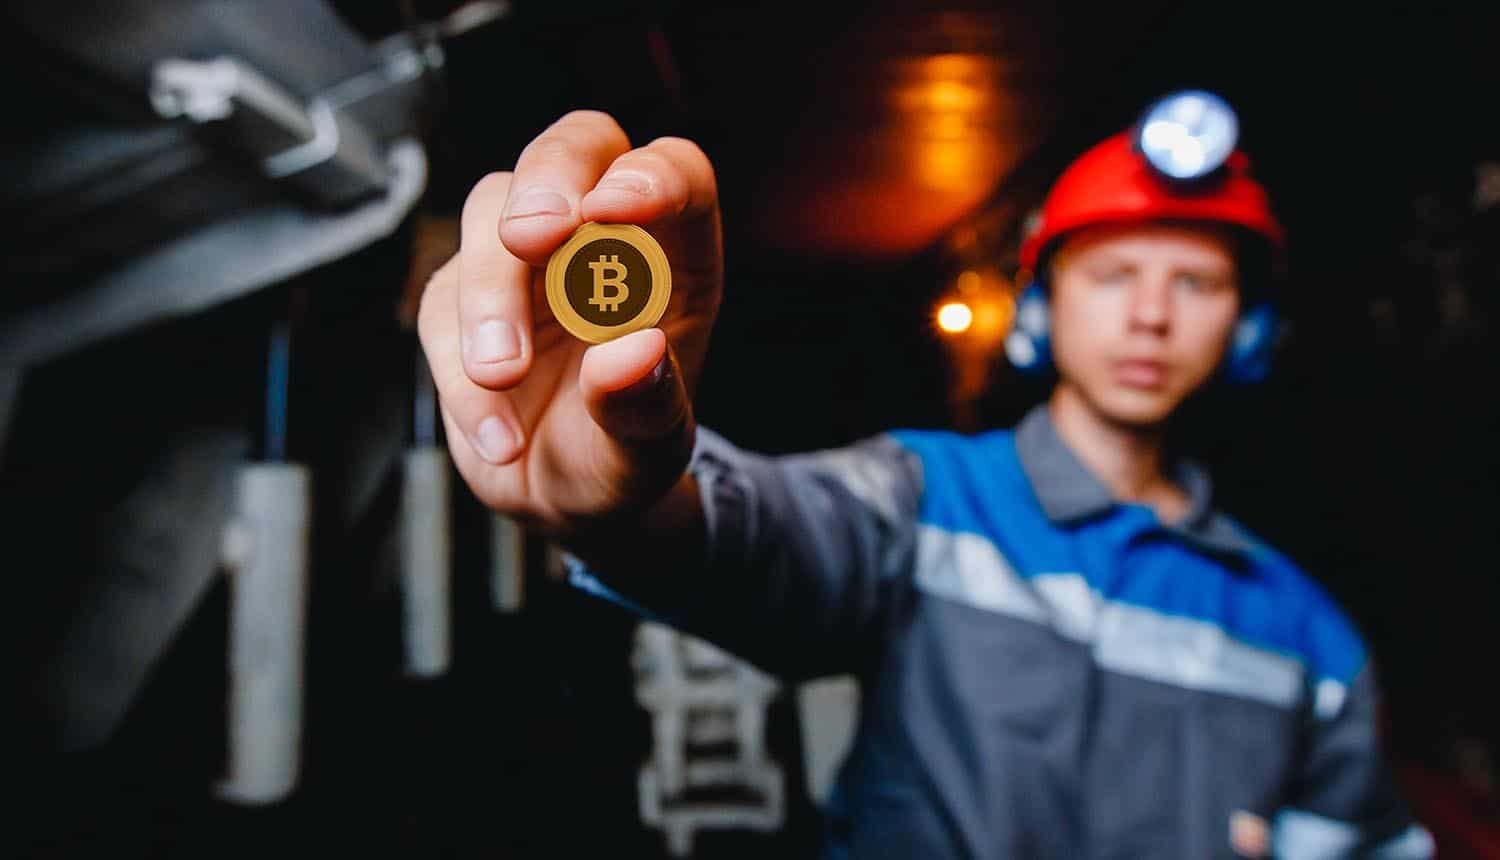 Miner holds a bitcoin in his hand